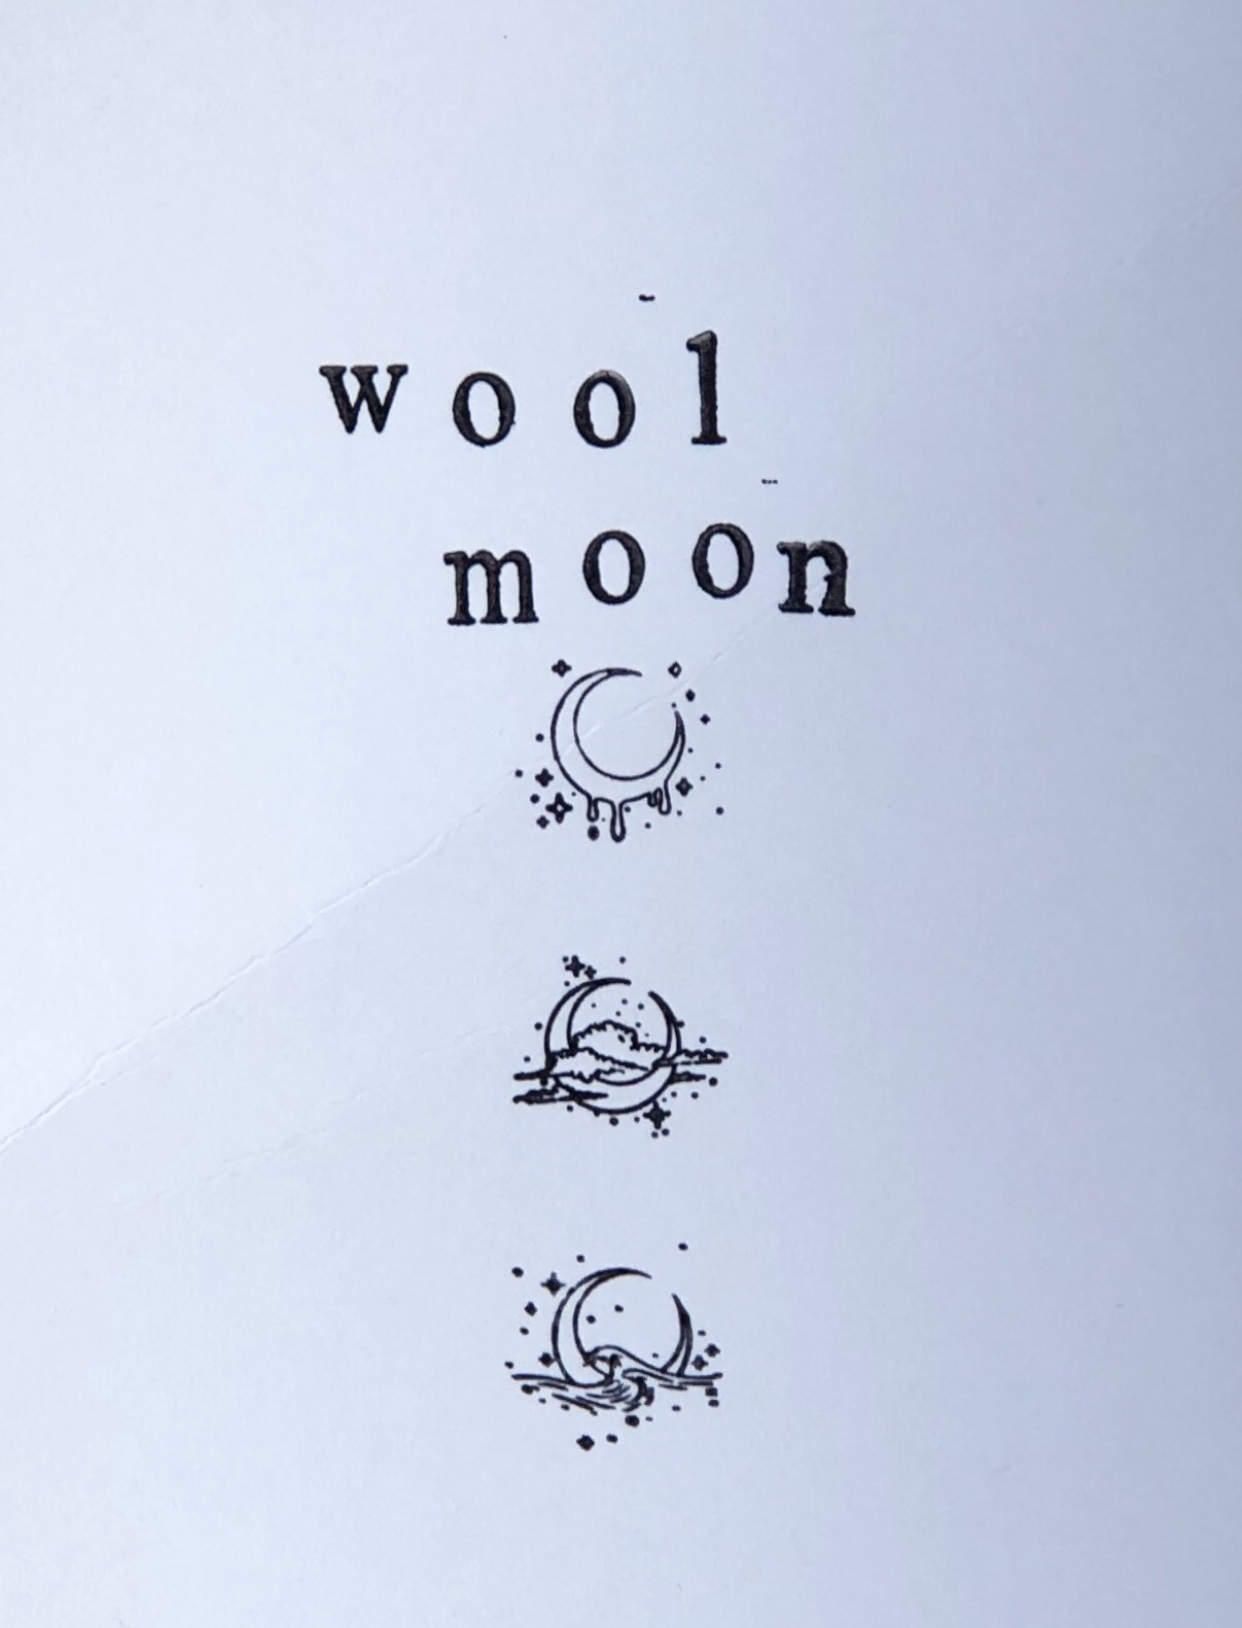 woolmoon designs